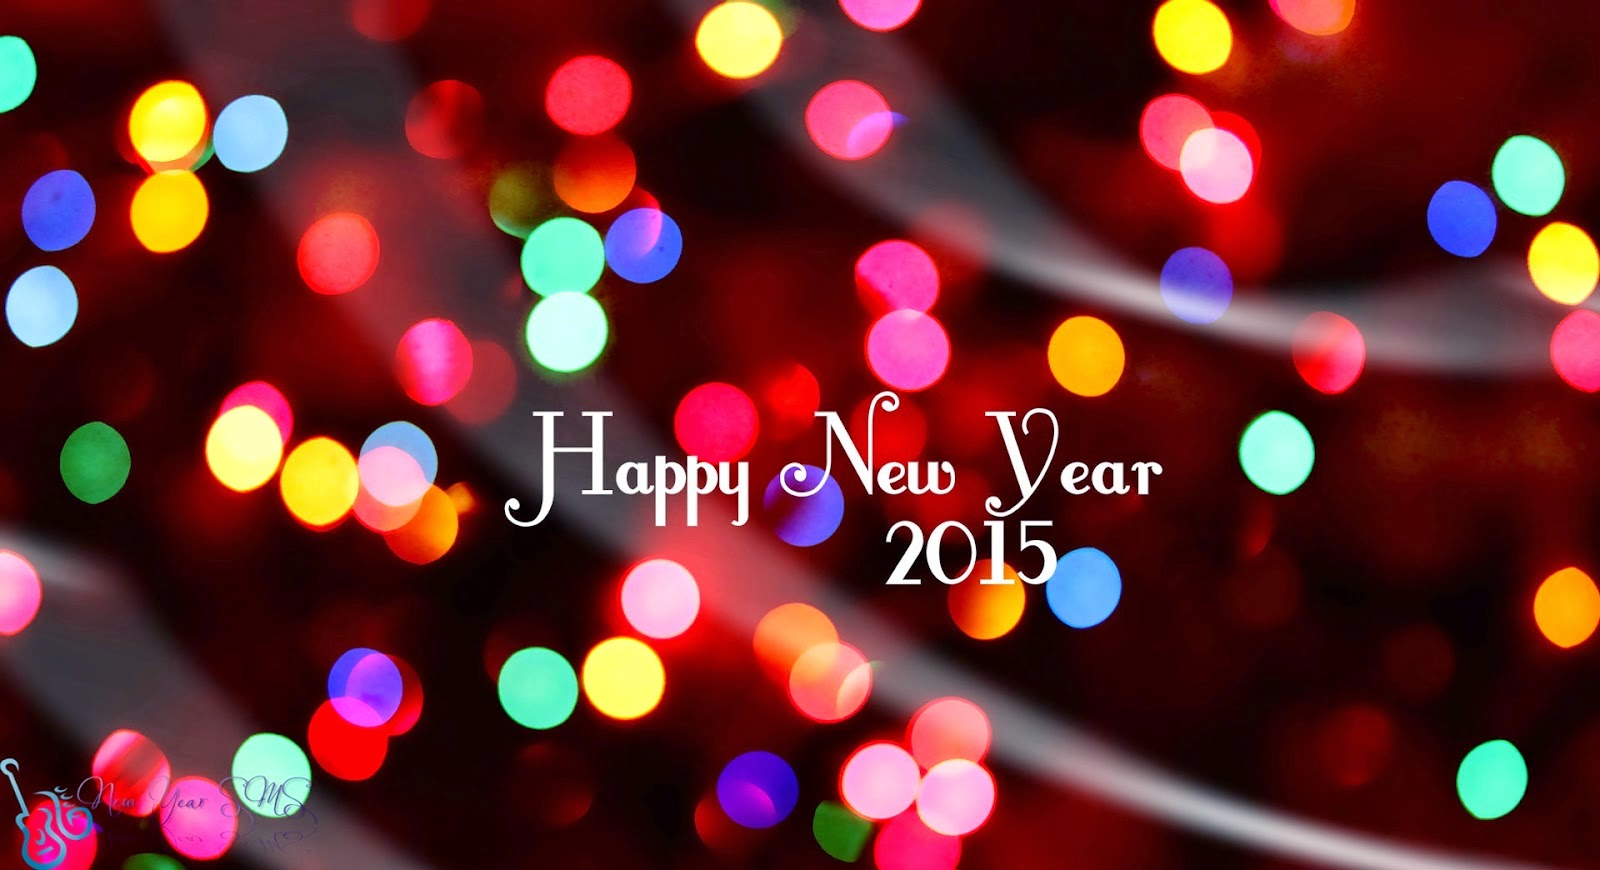 beautiful happy new year wallpapers hd 3